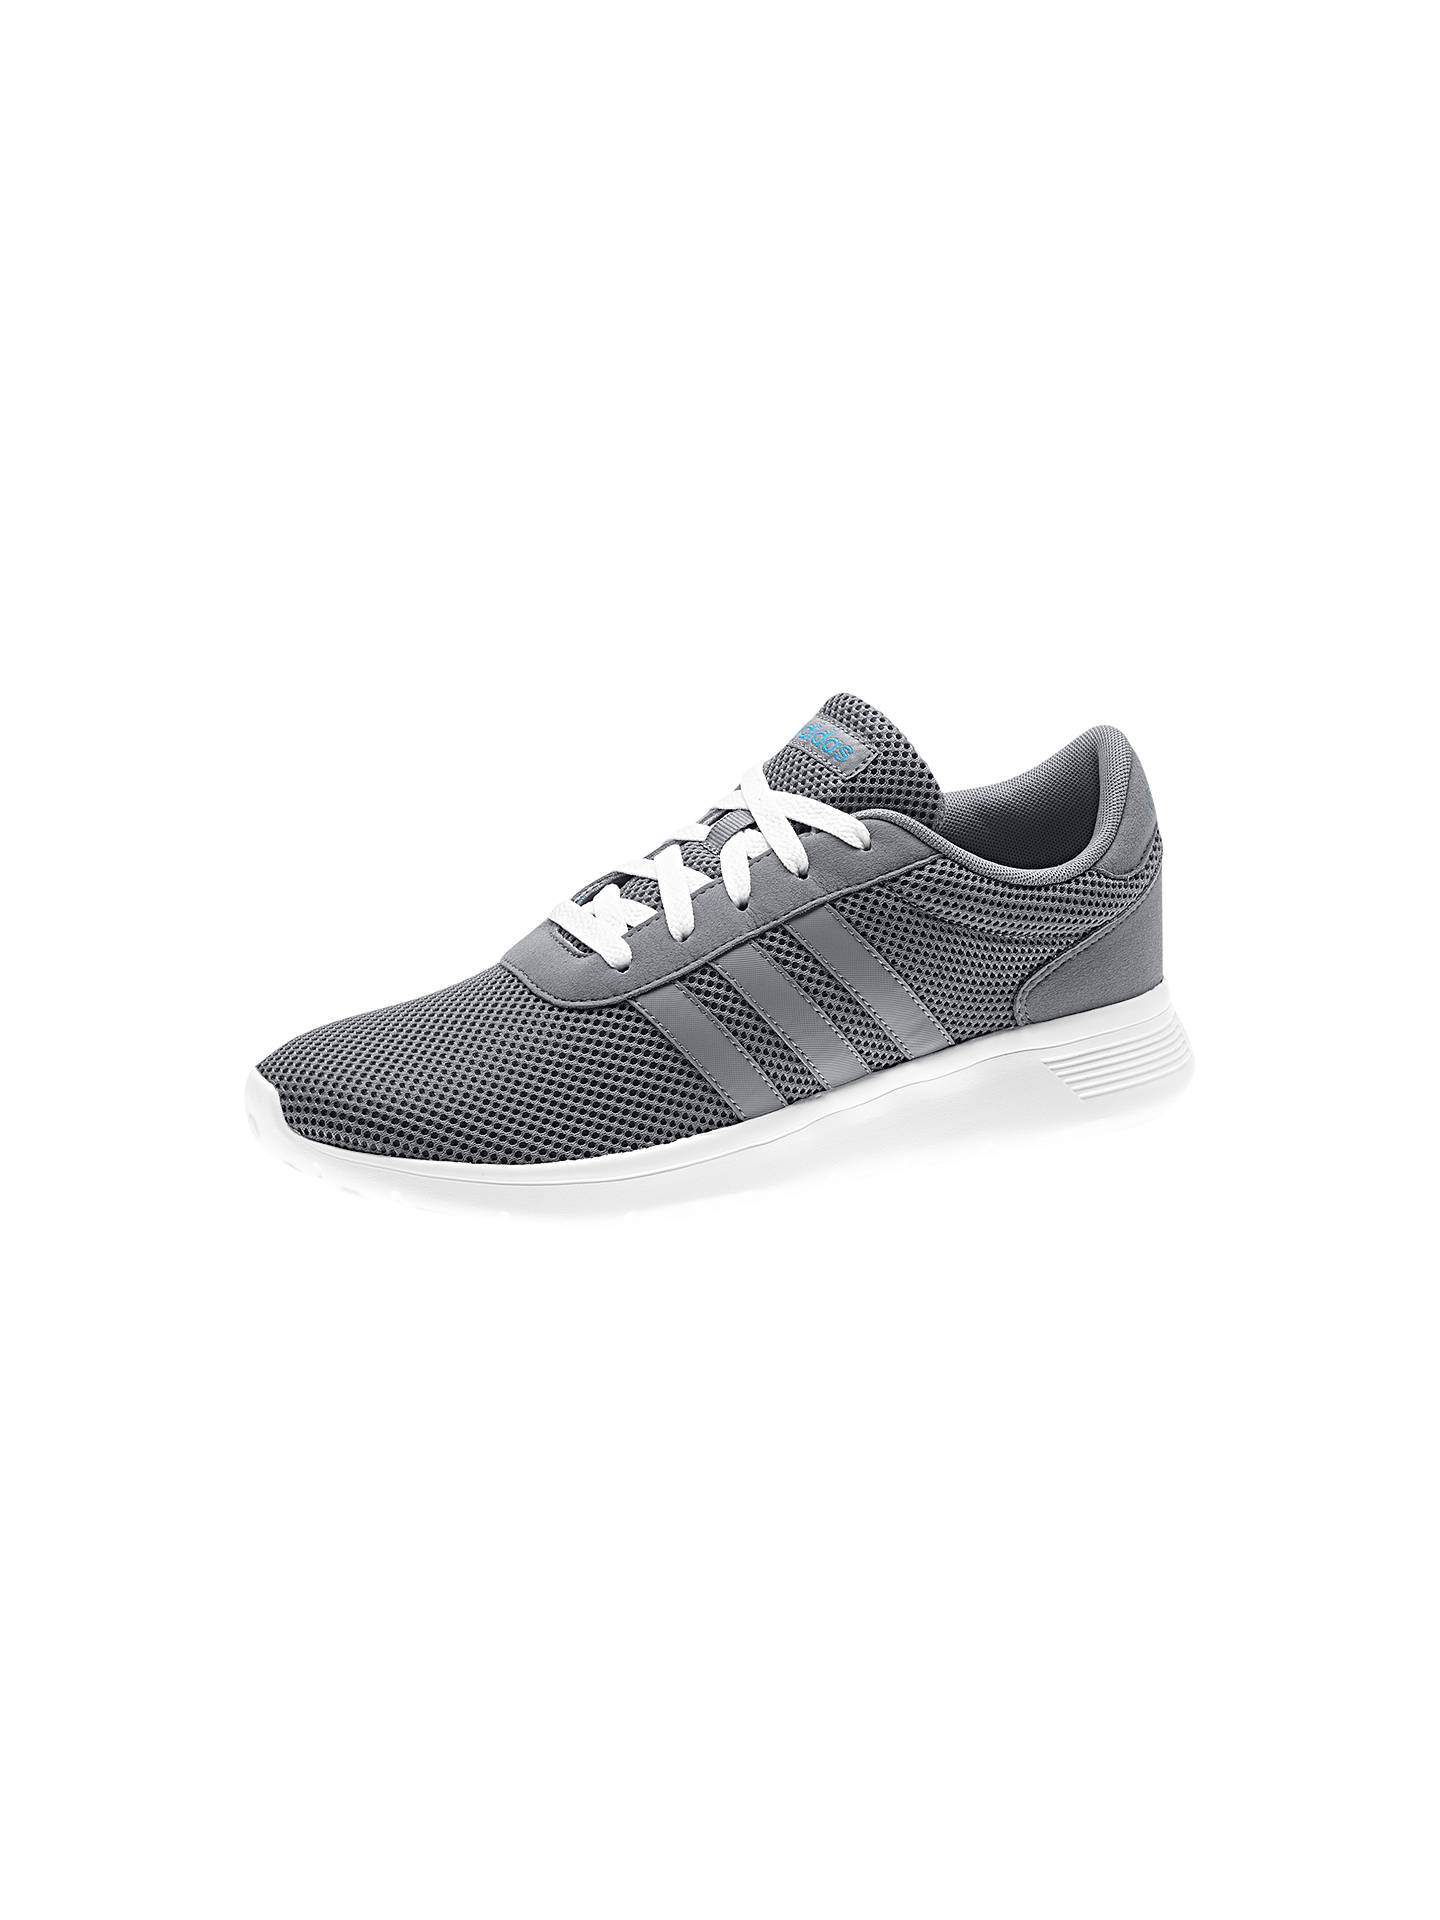 Adidas Mens Neo Lite Racer Trainers shoes Sports,Running,Gym ...